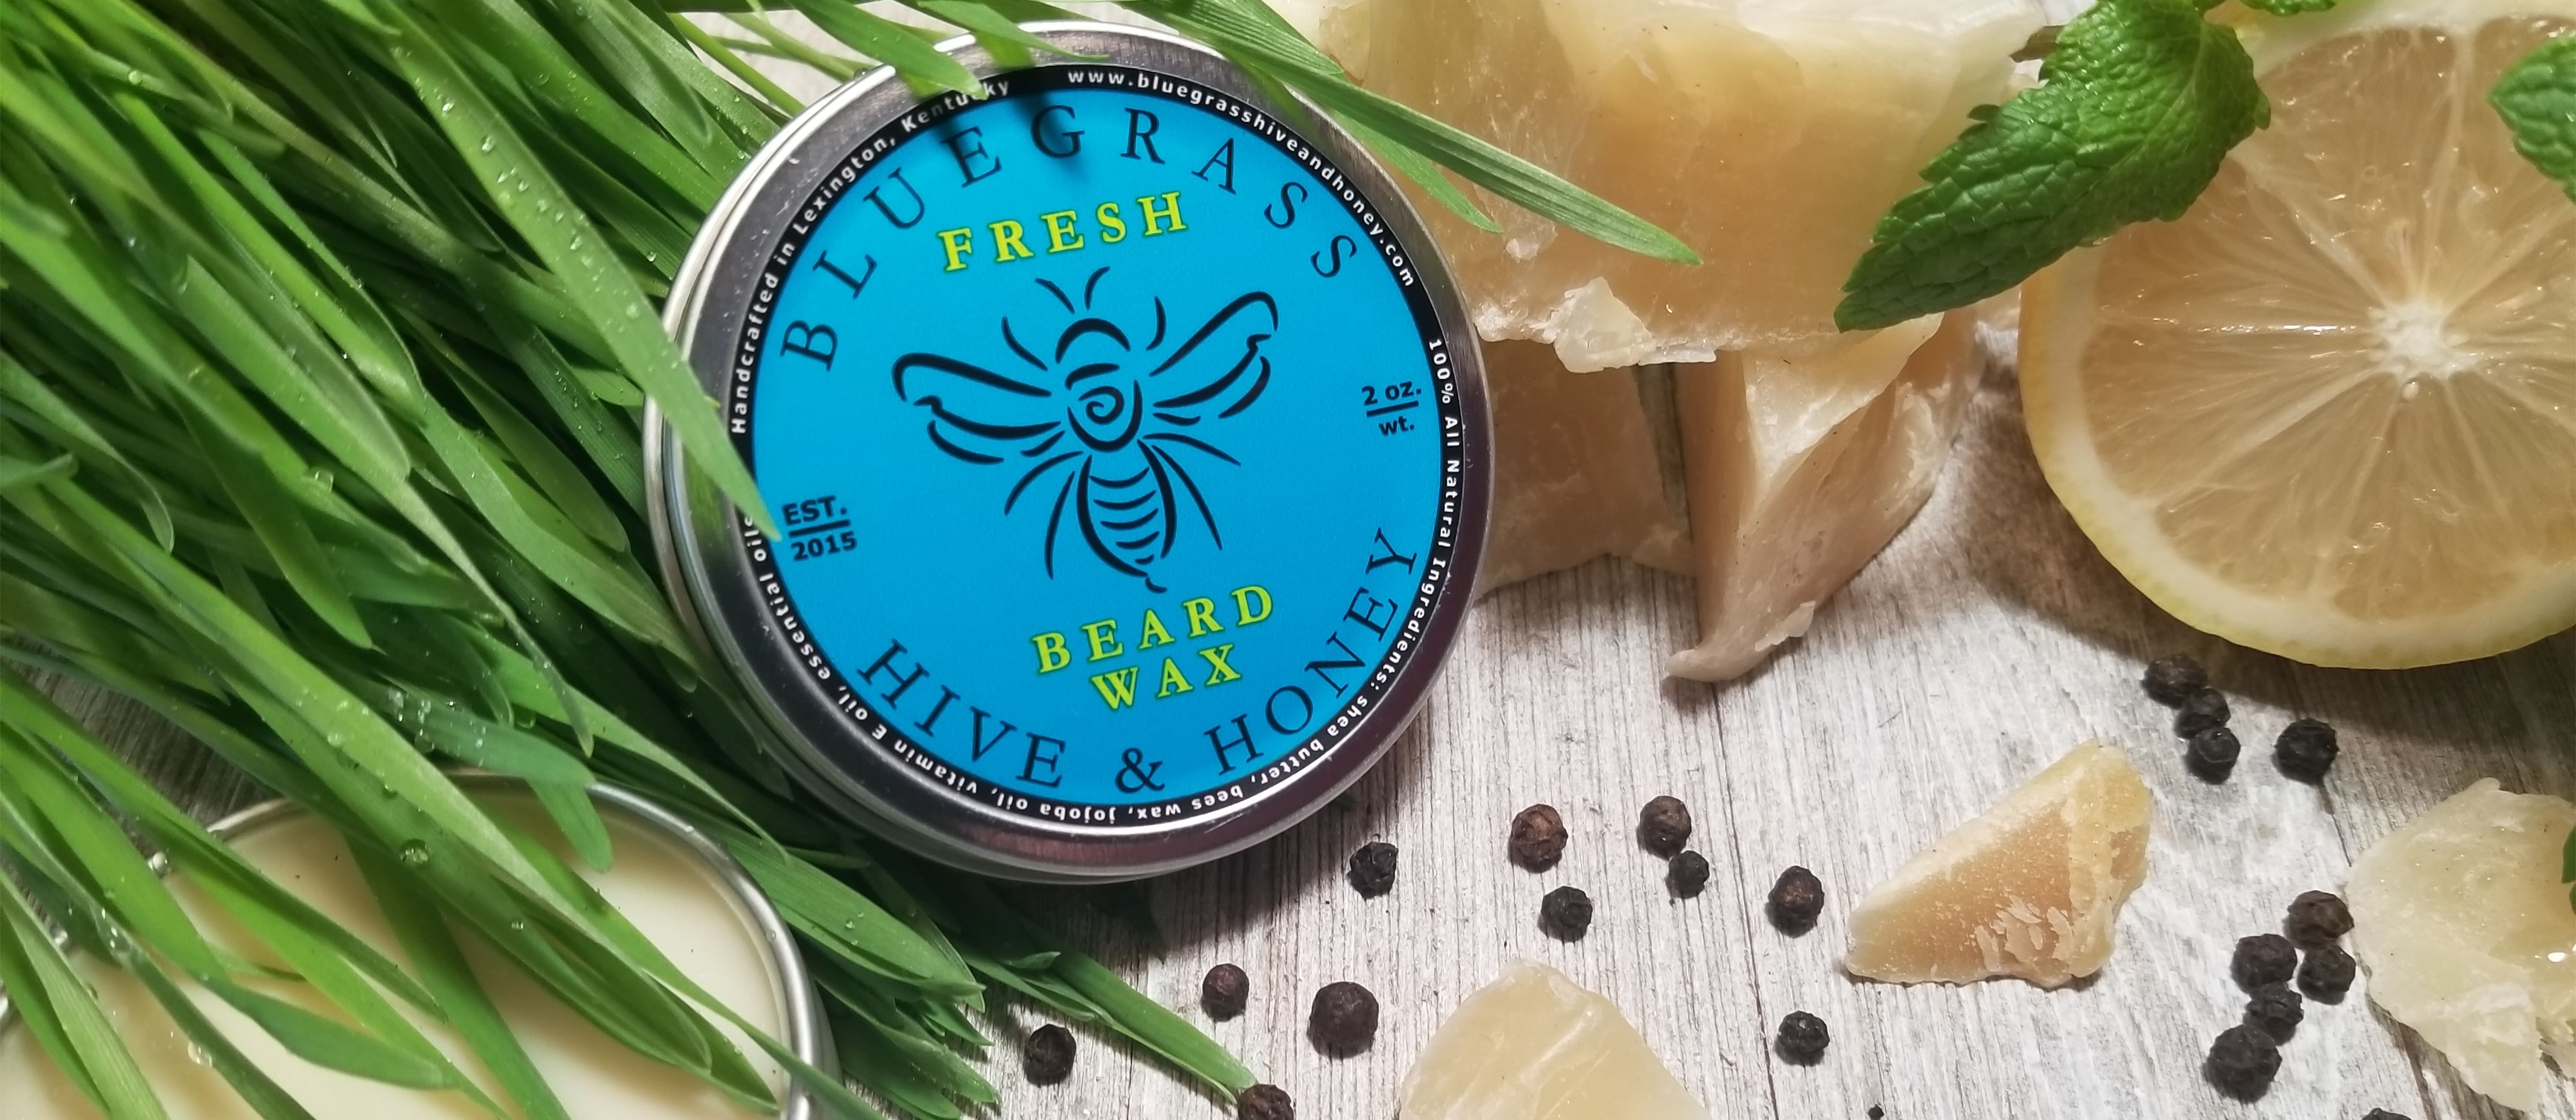 Premium Beard Balms and Waxes Fresh Scent